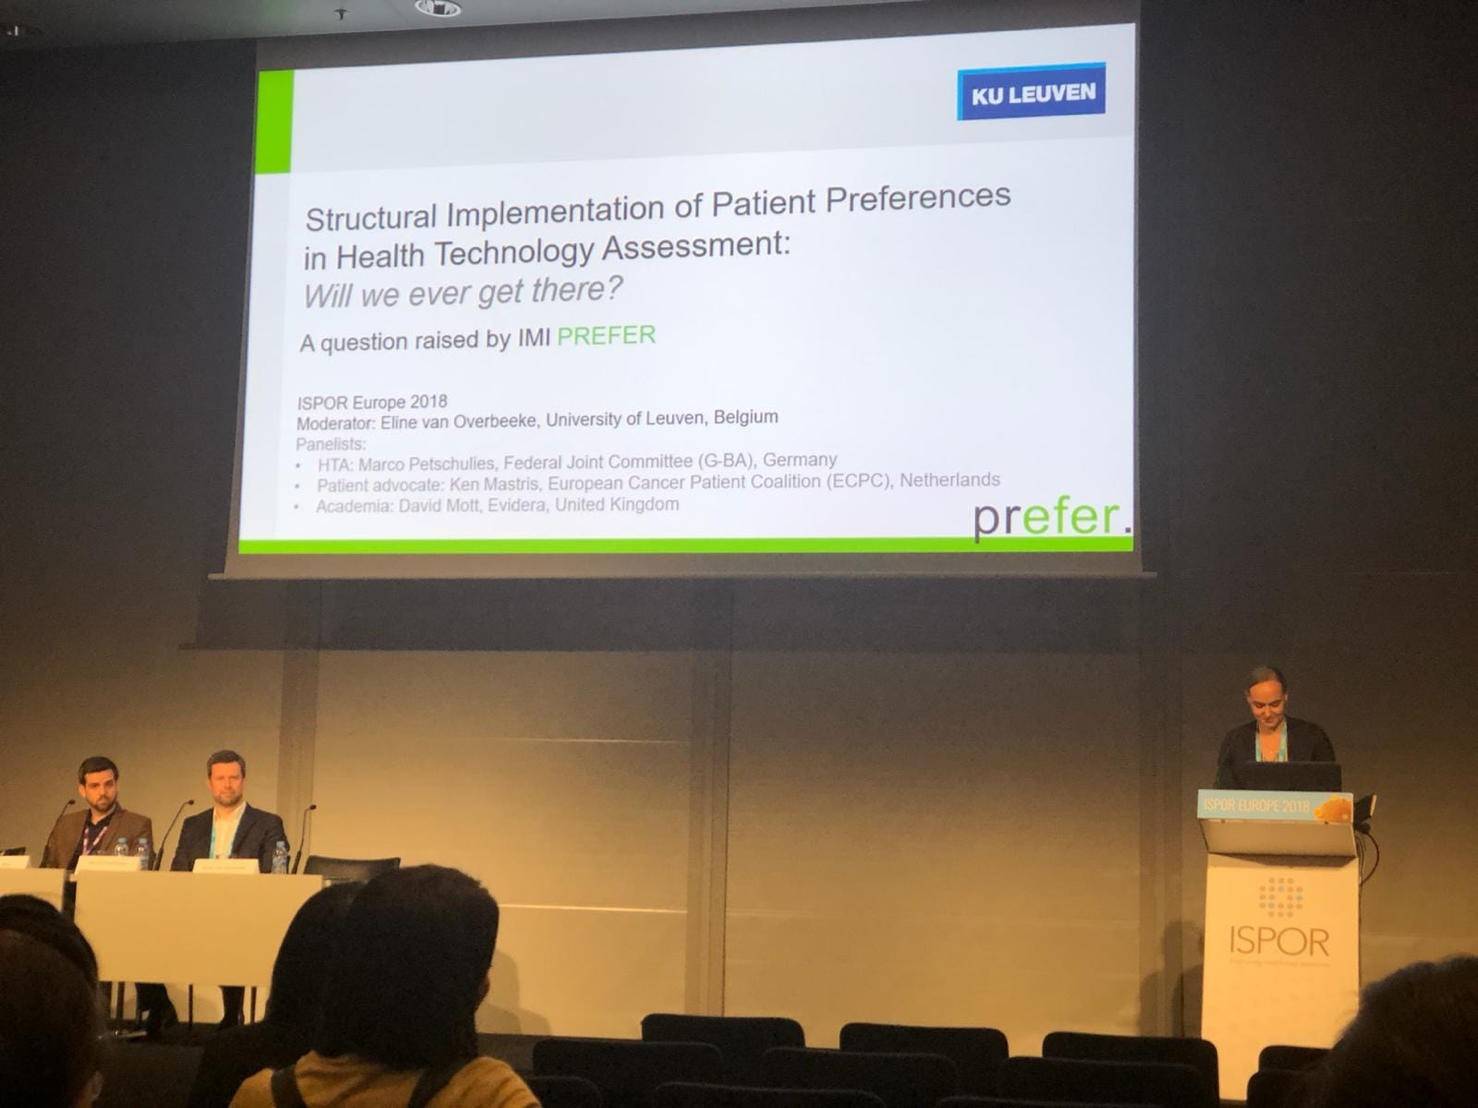 Patient preferences in HTA: ISPOR Europe 2018 Issue Panel